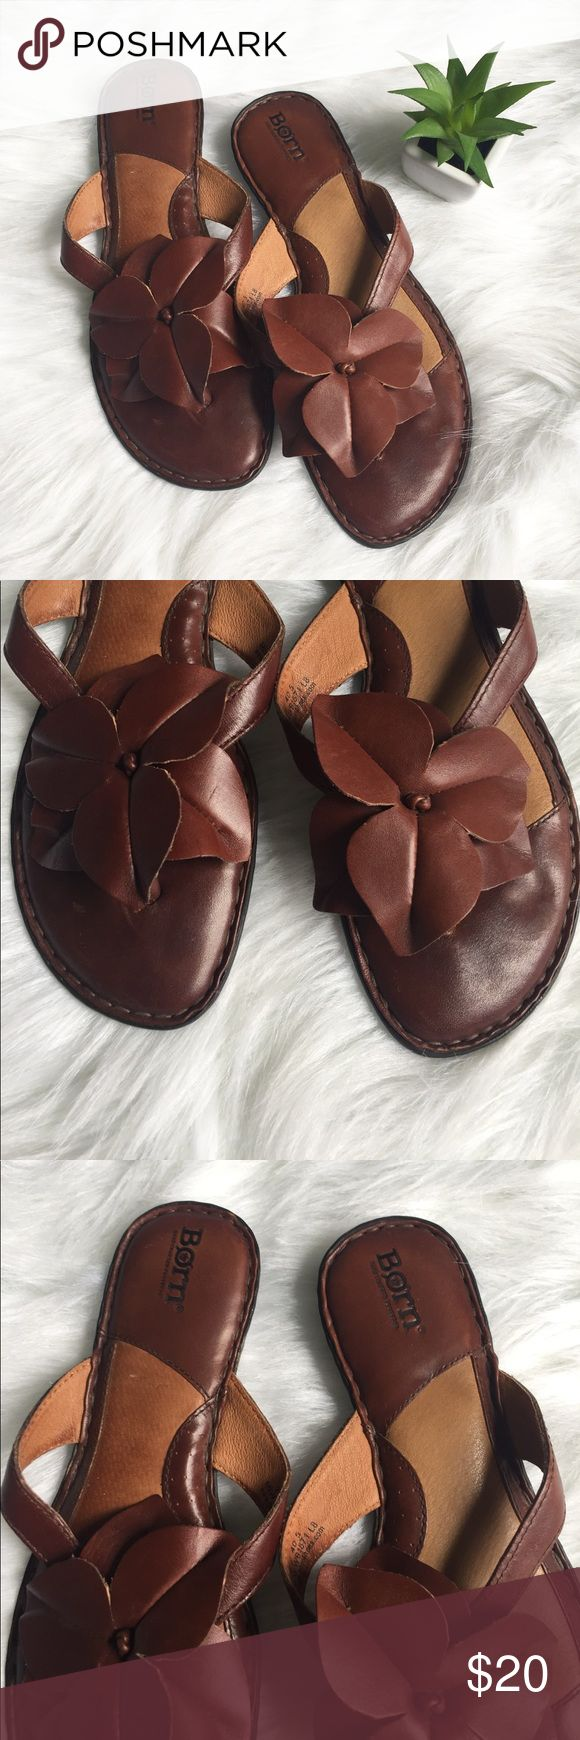 Born Leather Flower Accent Sandals Gently used condition, minimal wear (limited to foot beds). Mostly genuine leather. Size 9. Gorgeous hand crafted stitching and details. Born Shoes Sandals